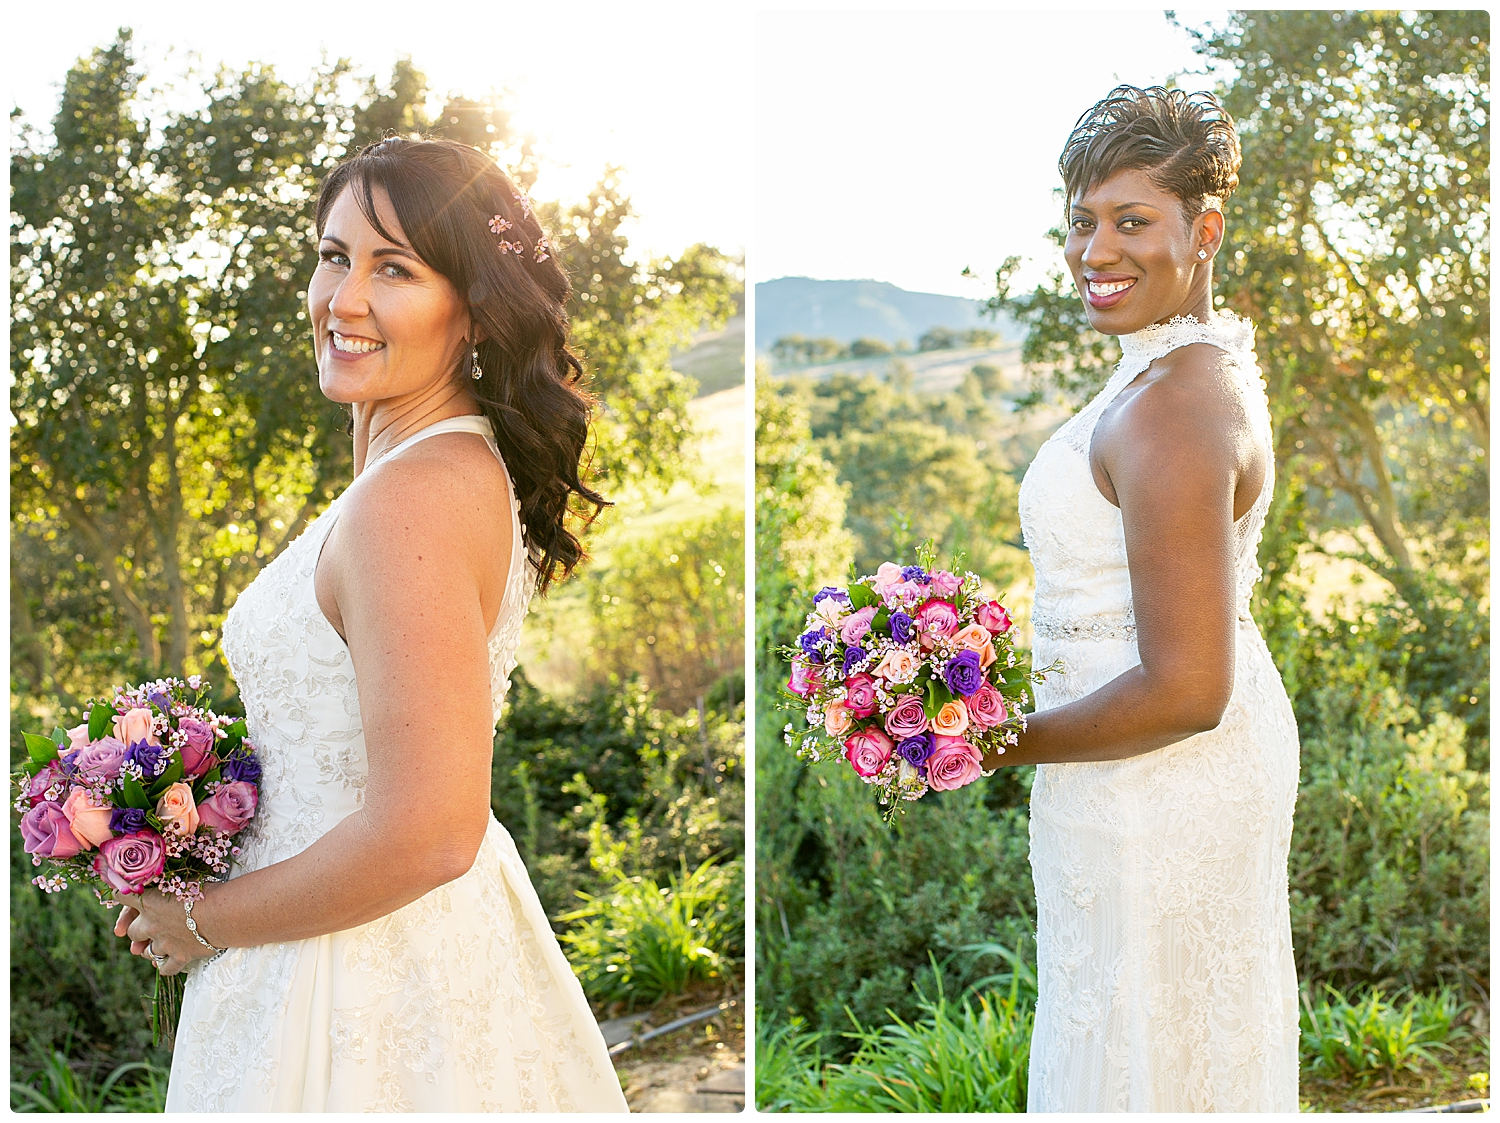 New Years Eve intimate wedding_Renoda Campbell Photography_LGBT wedding_0060.jpg